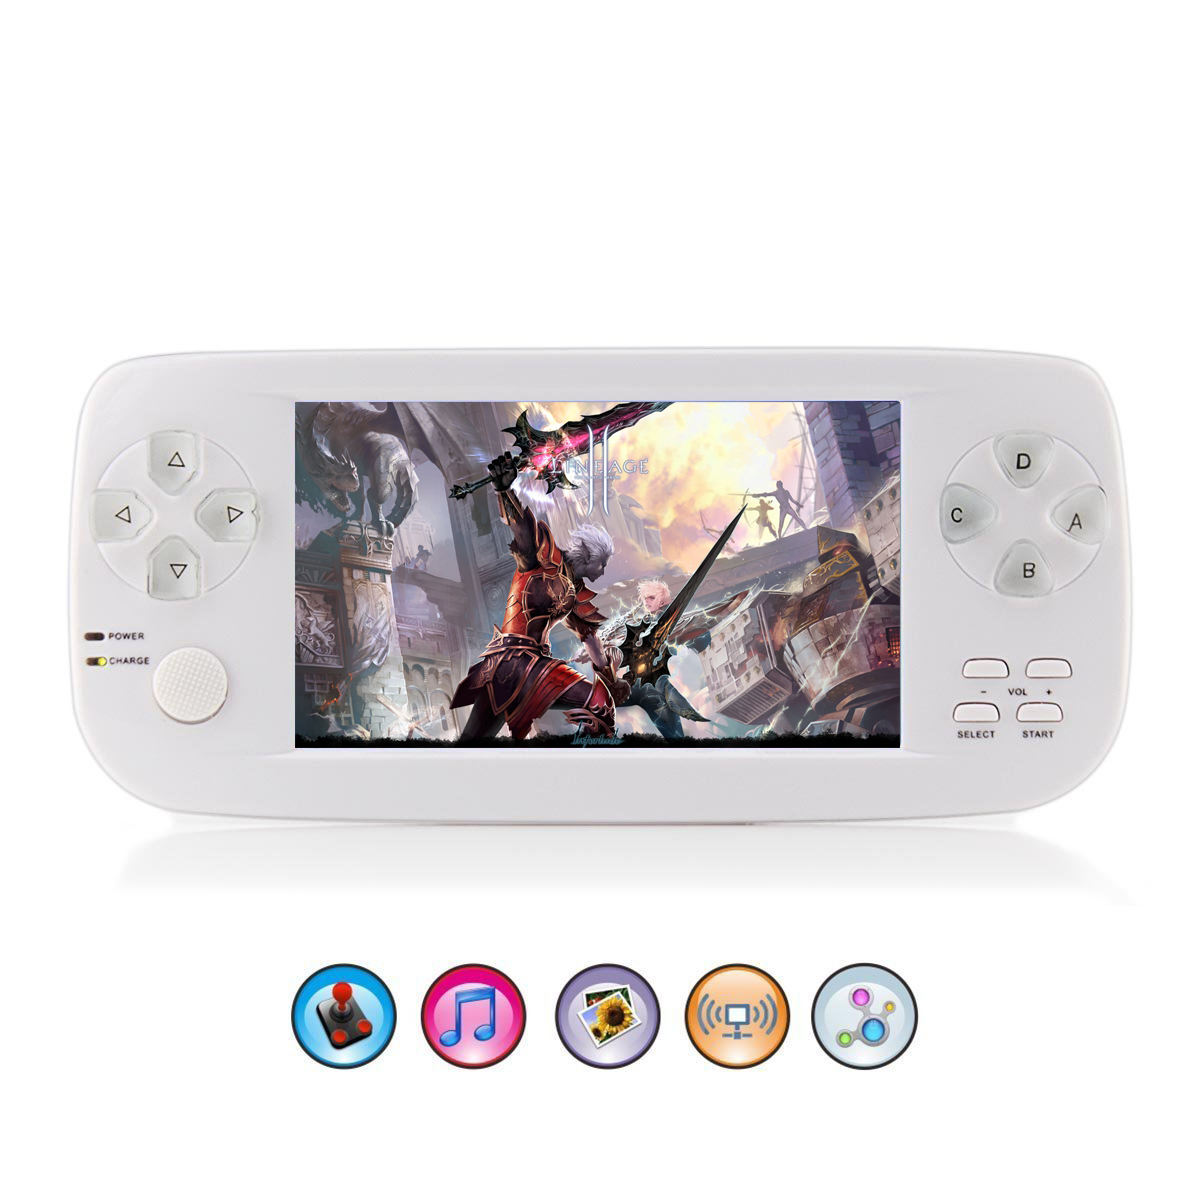 64 Bit 4.3 Inch Handheld Video PAP KIII Game Console for Child